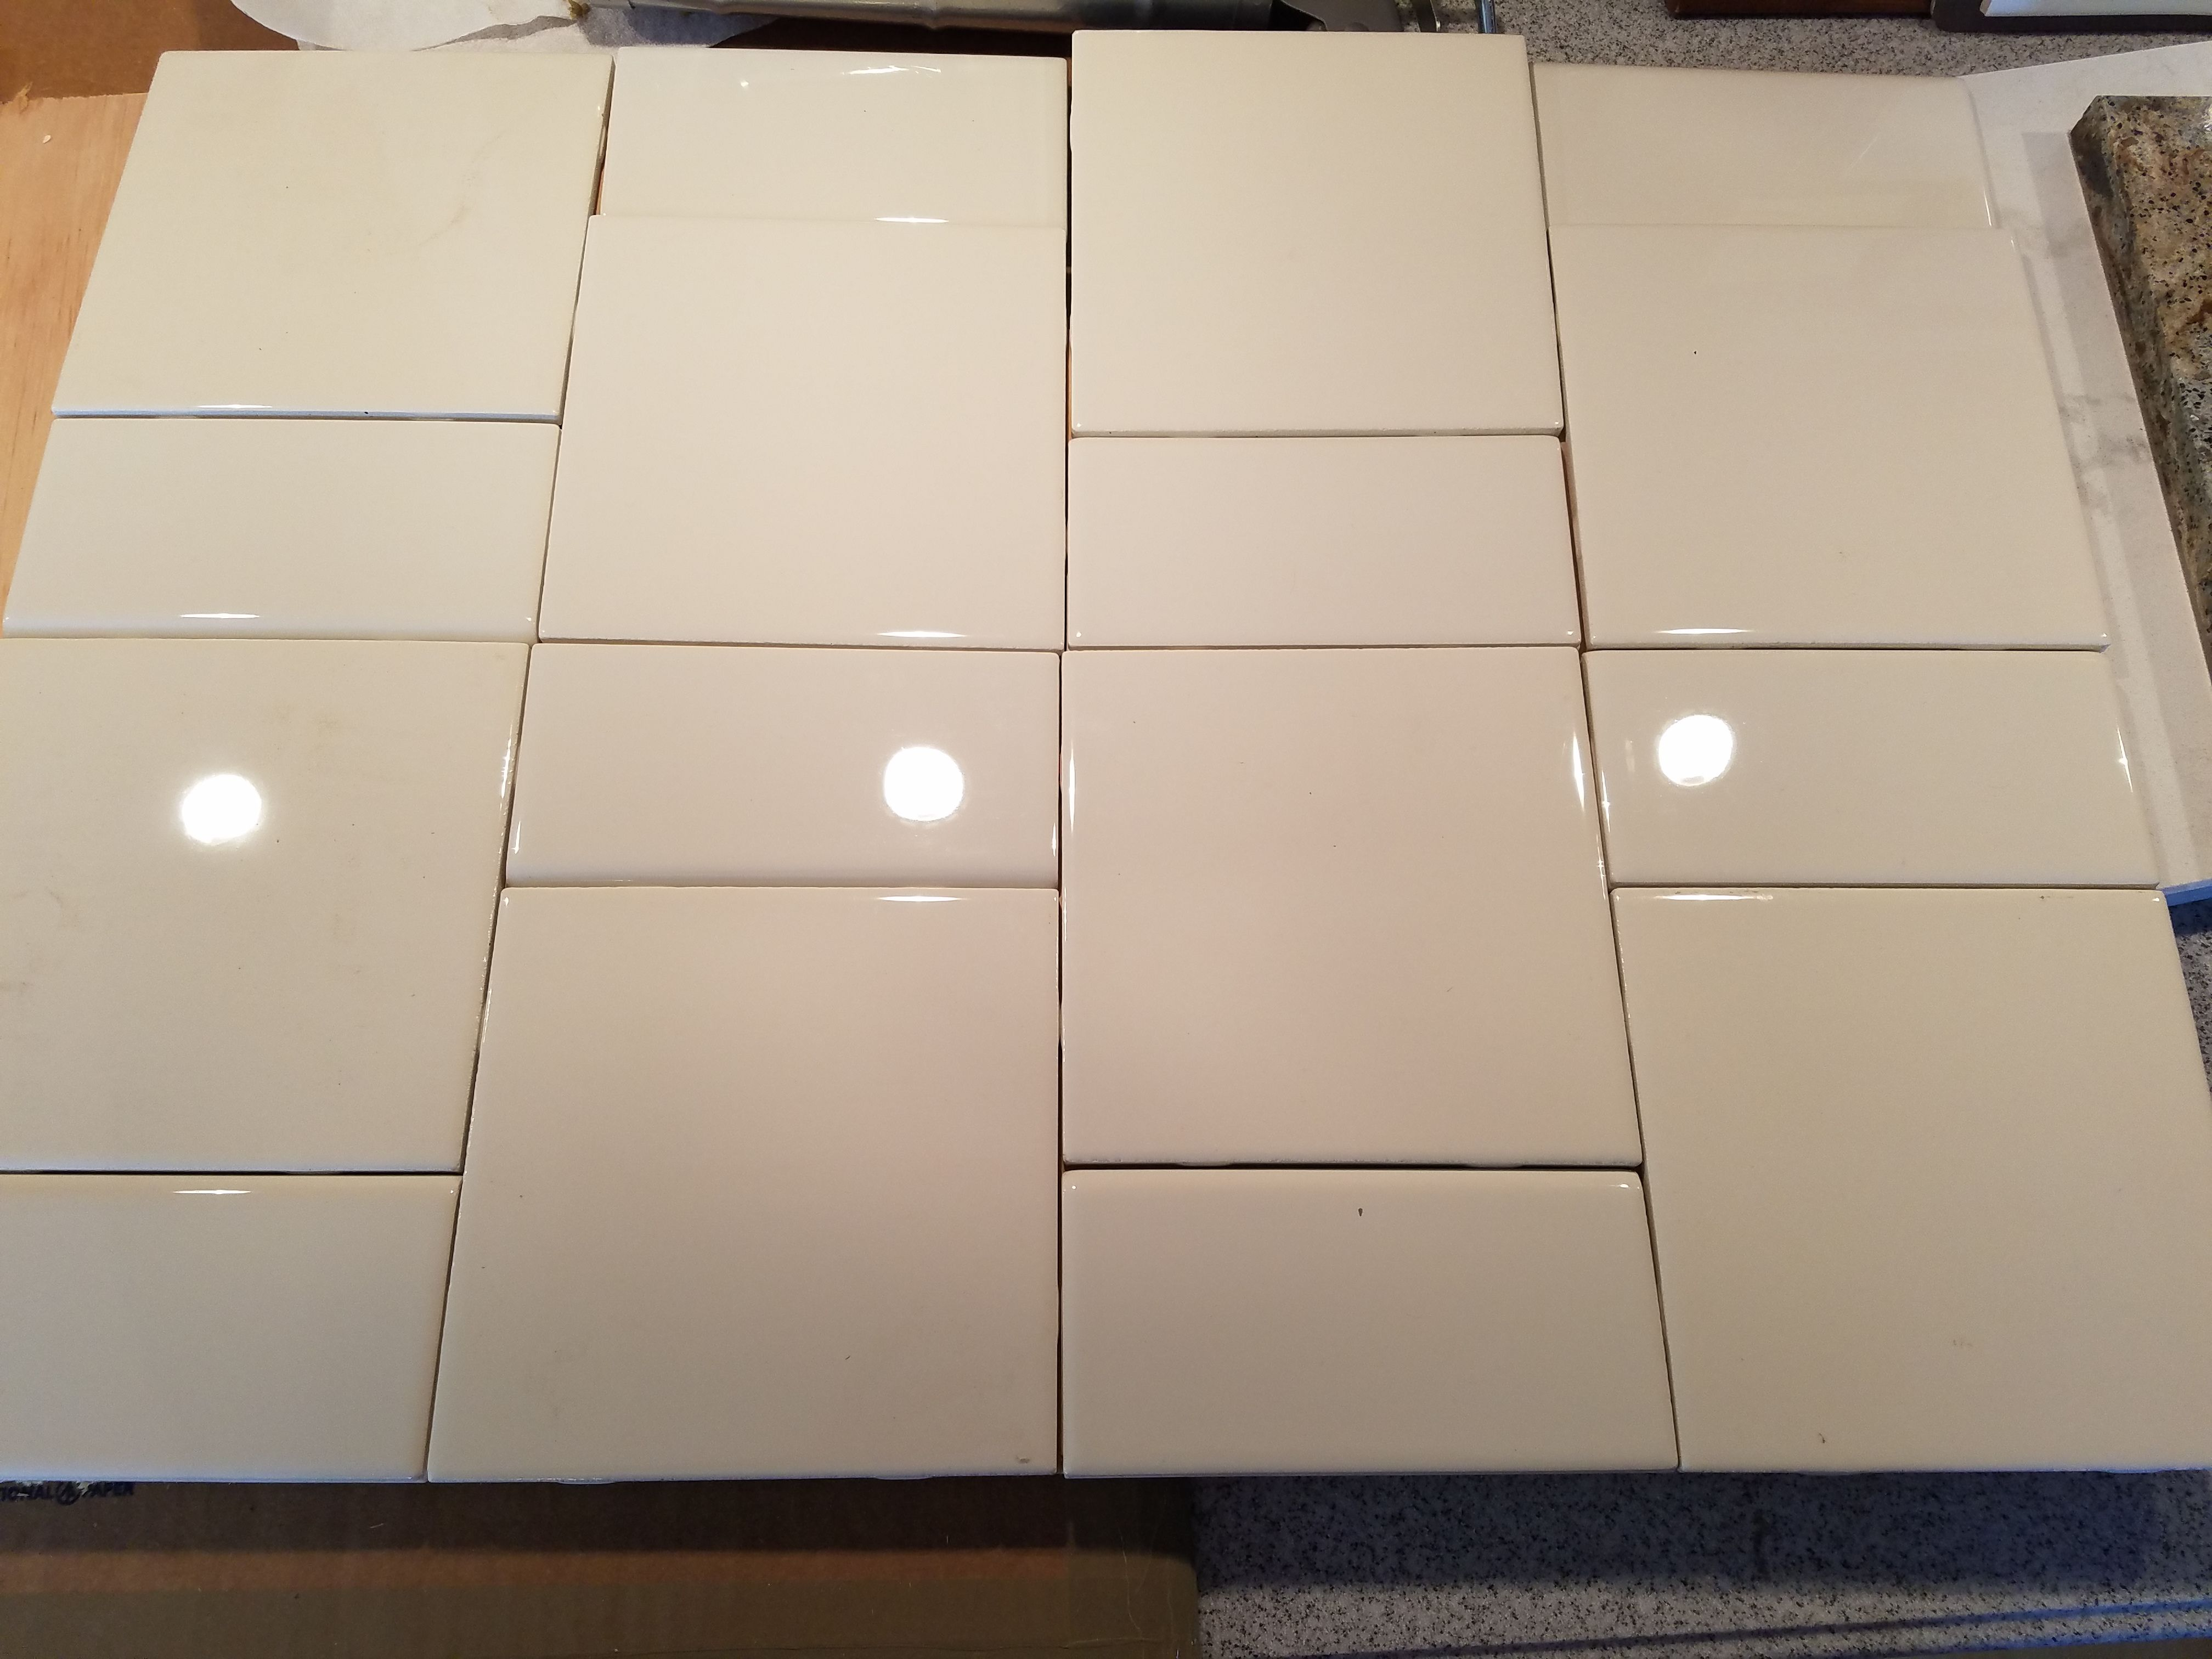 Alternating Vertical Pattern Using 6x6 And 3x6 Flooring Tile